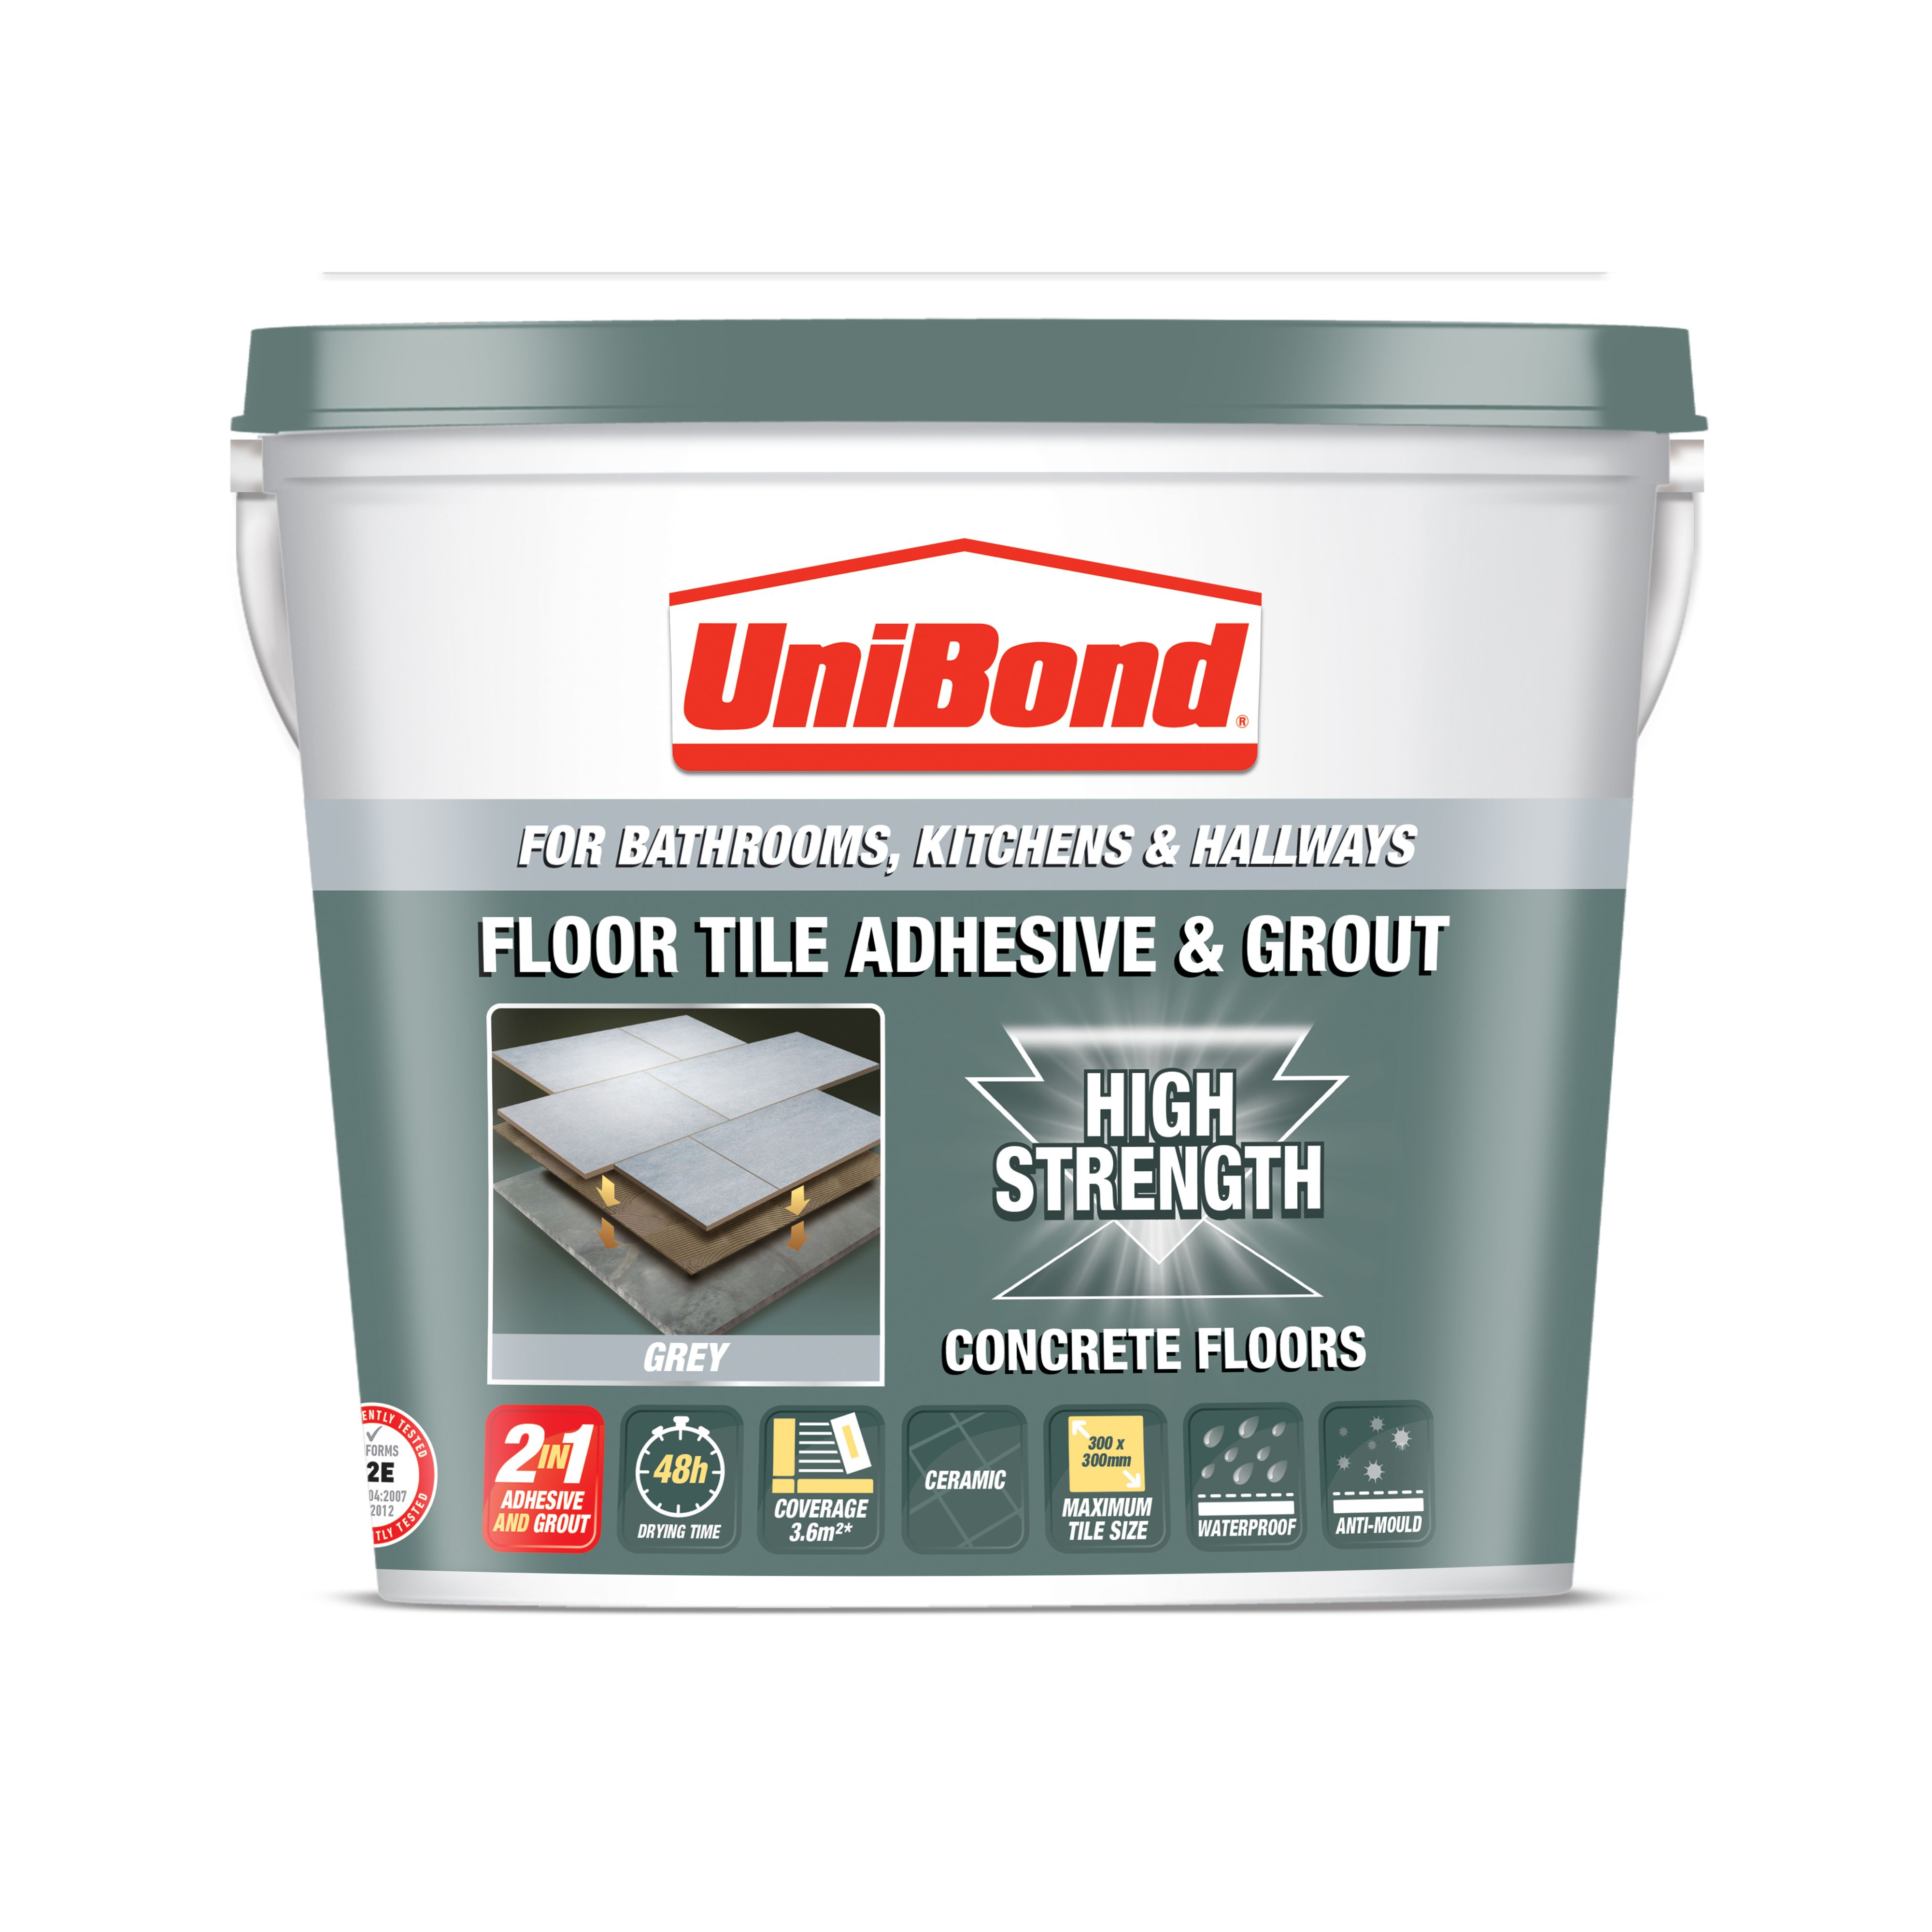 Unibond floor tile adhesive and grout gallery tile flooring unibond ceramic floor tile adhesive and grout choice image tile unibond ceramic floor tile adhesive grout dailygadgetfo Gallery